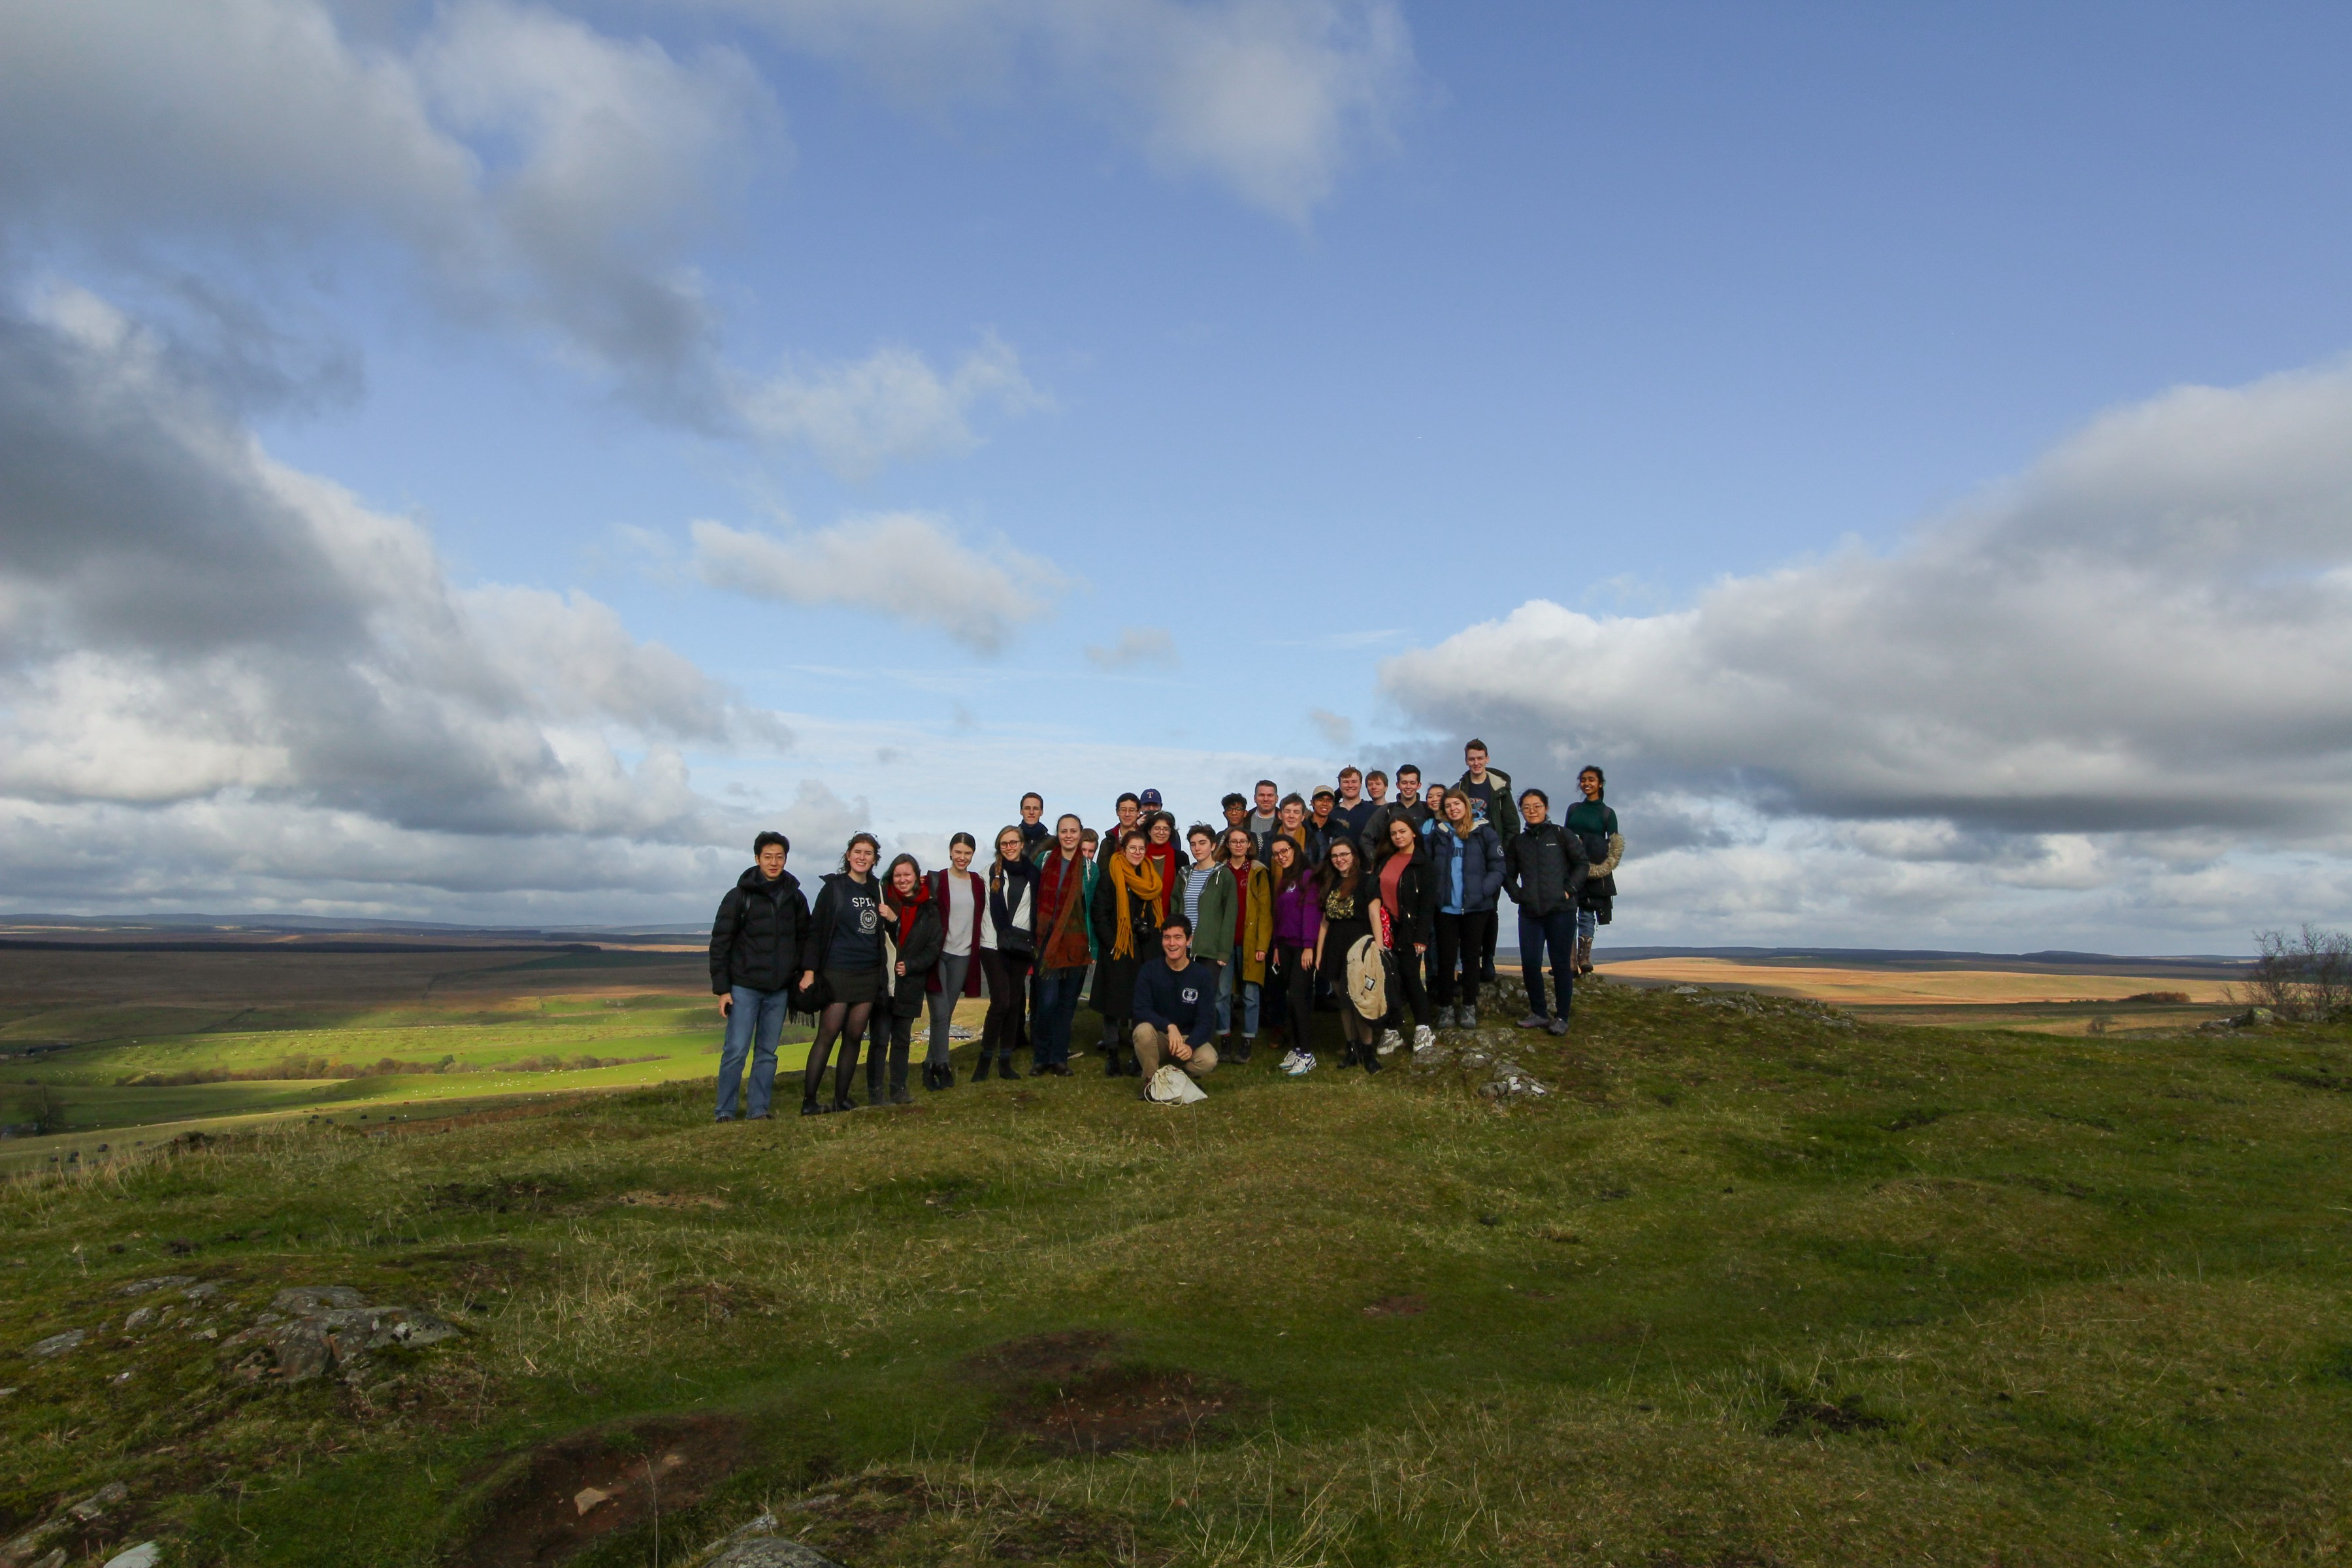 Group photo of the Classics Society at Hadrian's Wall